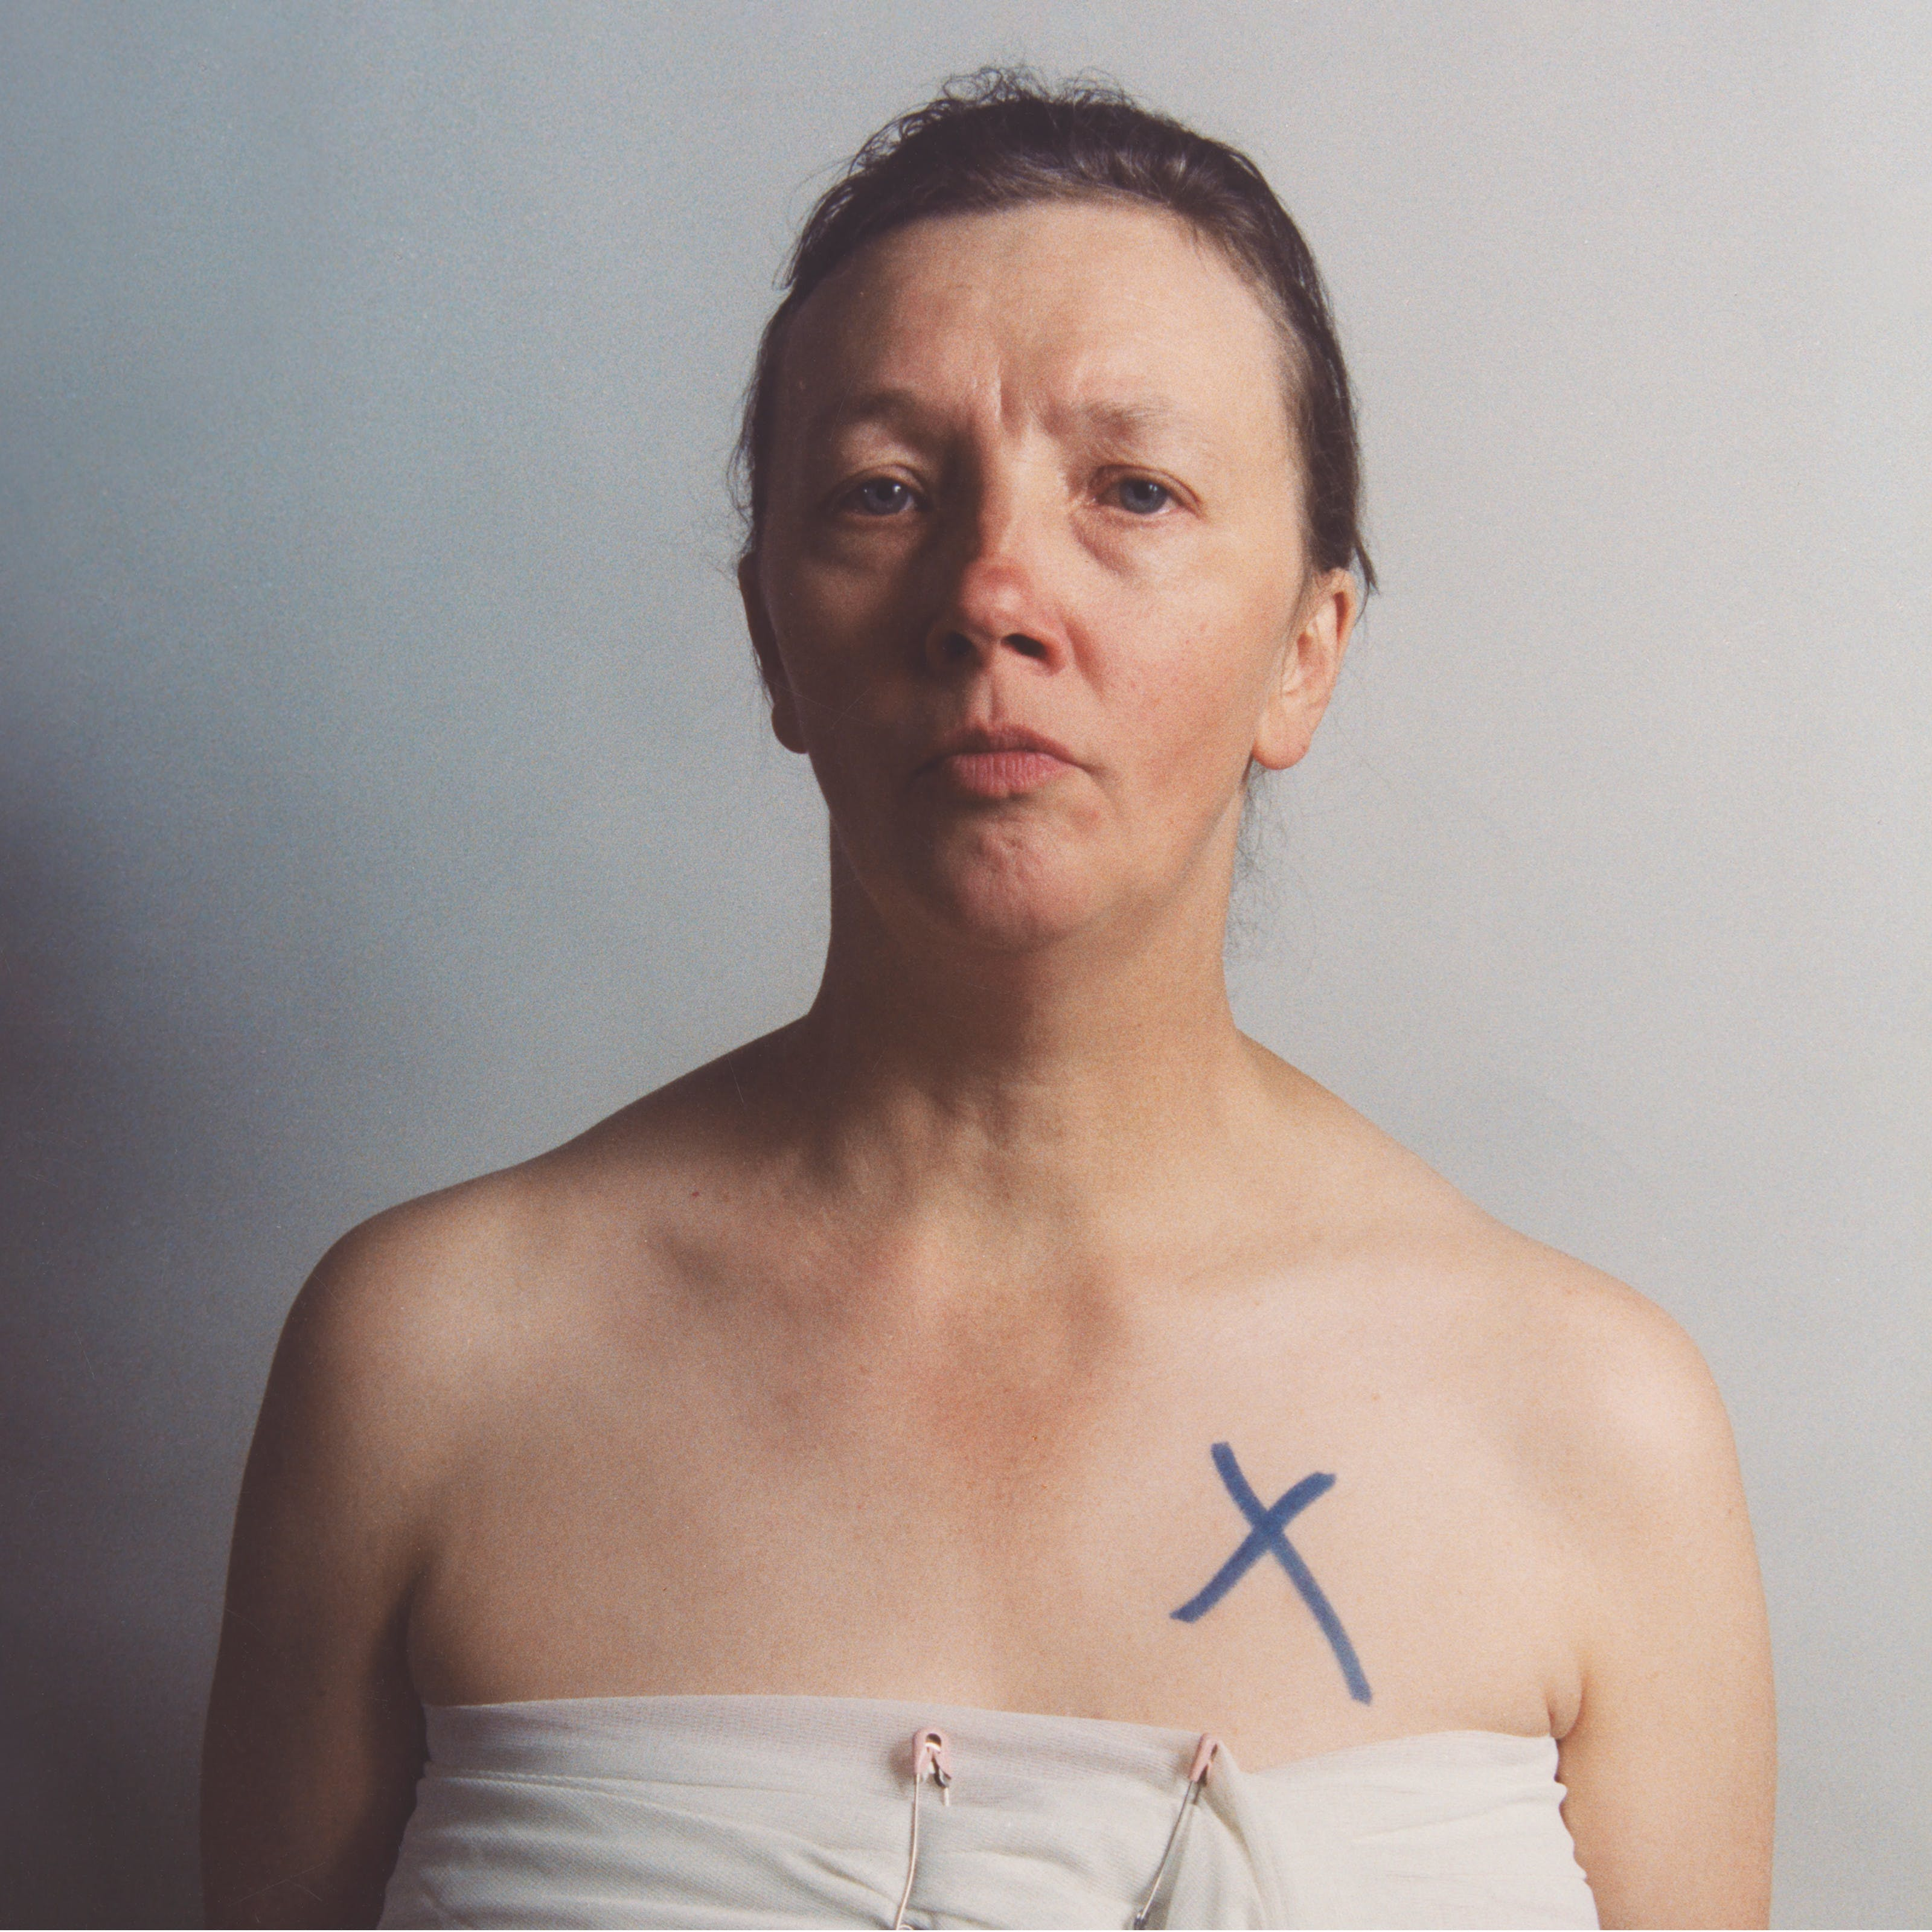 Half-body self-portrait of Jo Spence, with her chest wrapped in white muslin secured with two nappy pins and a cross in blue marker pen on skin above her left breast.